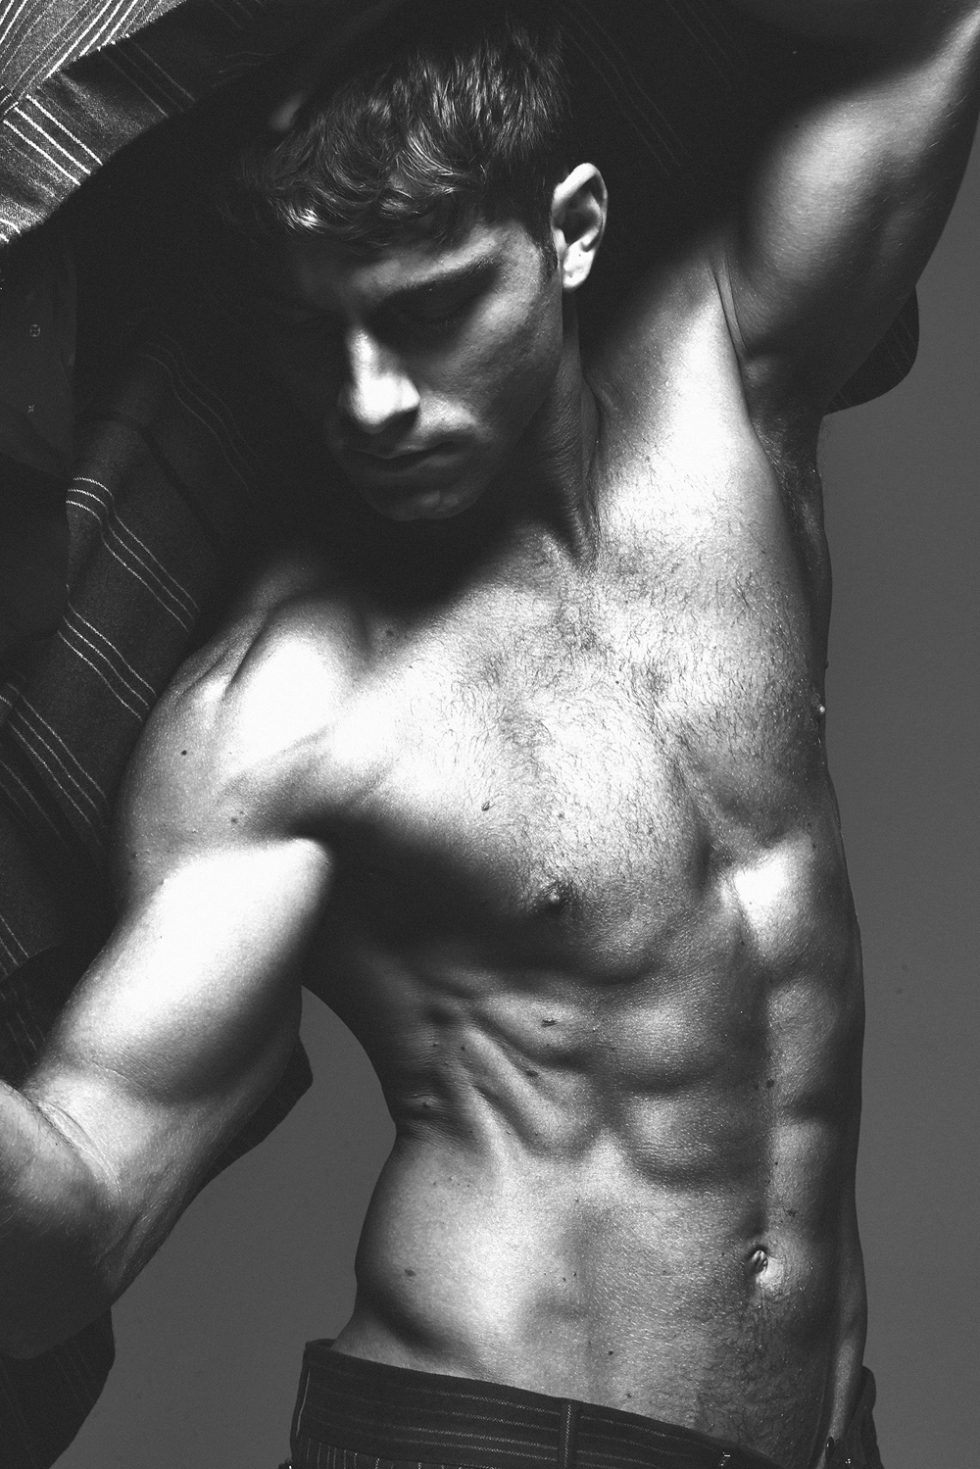 Dashing model Andre Ziehe at Ford Models posing for a splendid new studio set by photographer Mathew Guido.